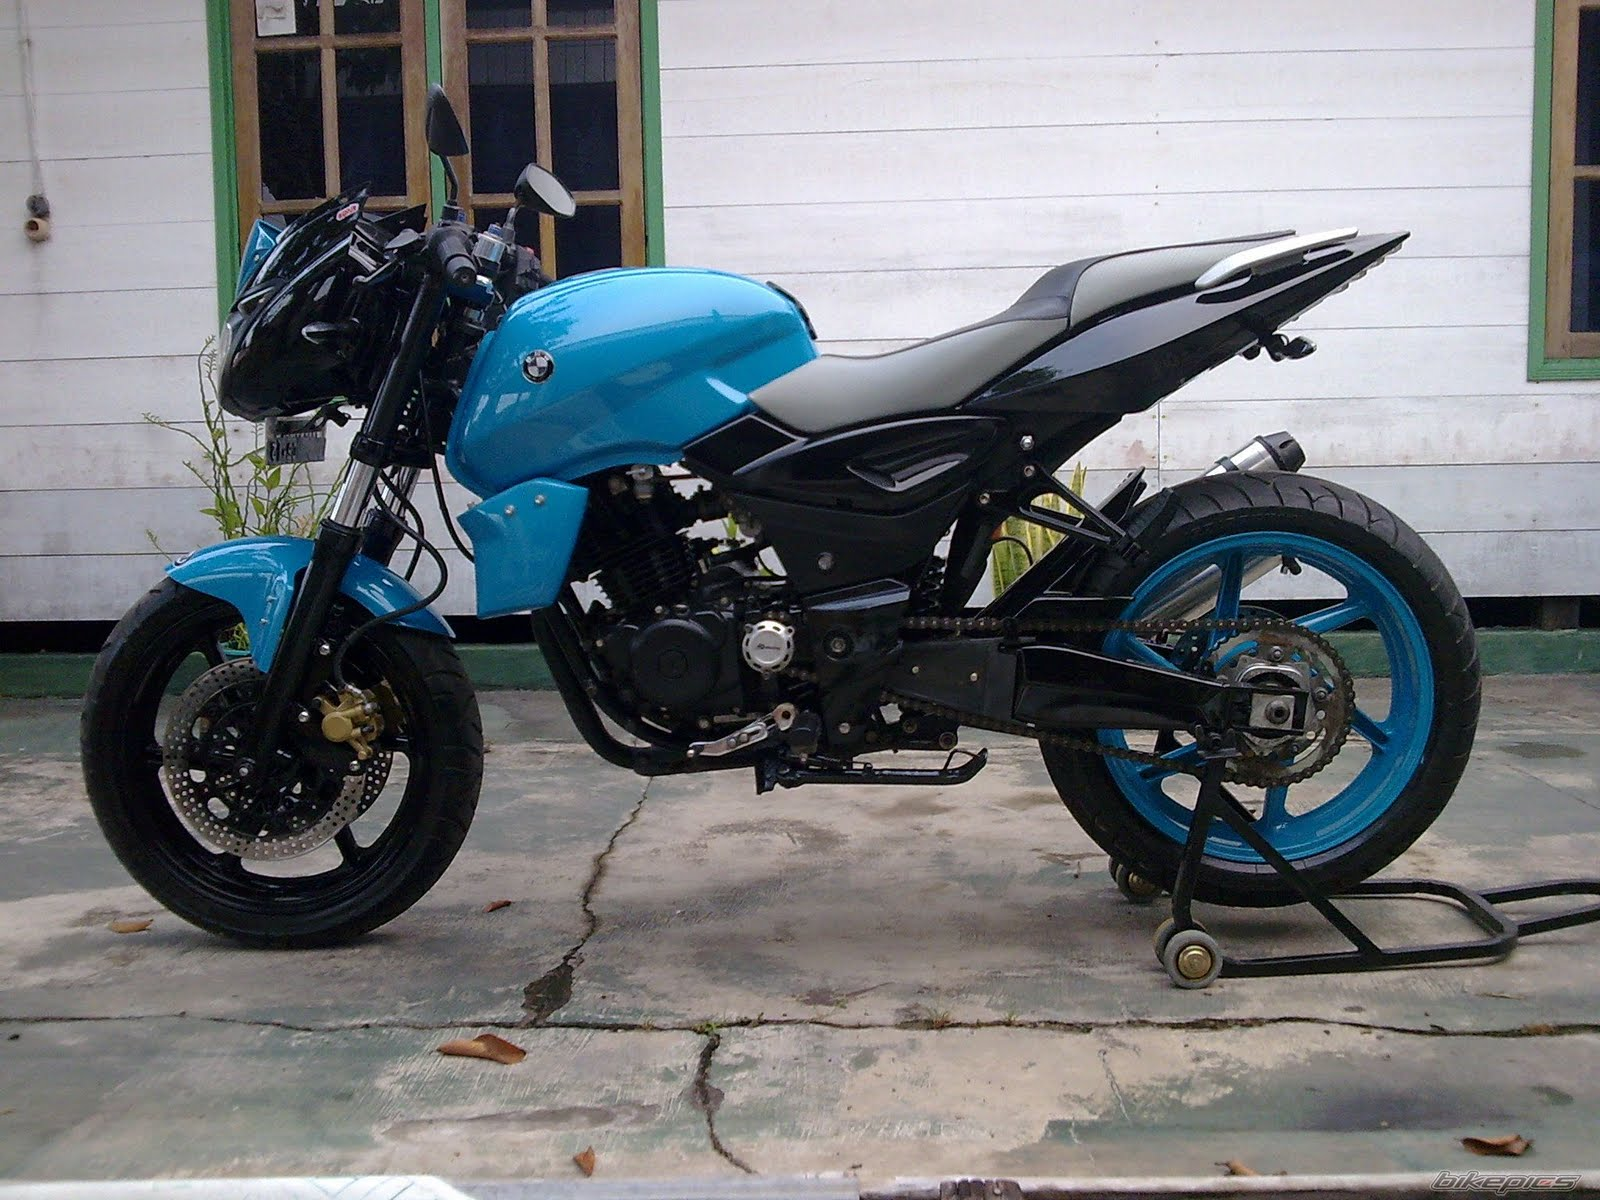 Pulsar 220 Hd Wallpapers 1080p Modification To The Bike Should Be Legal Modification